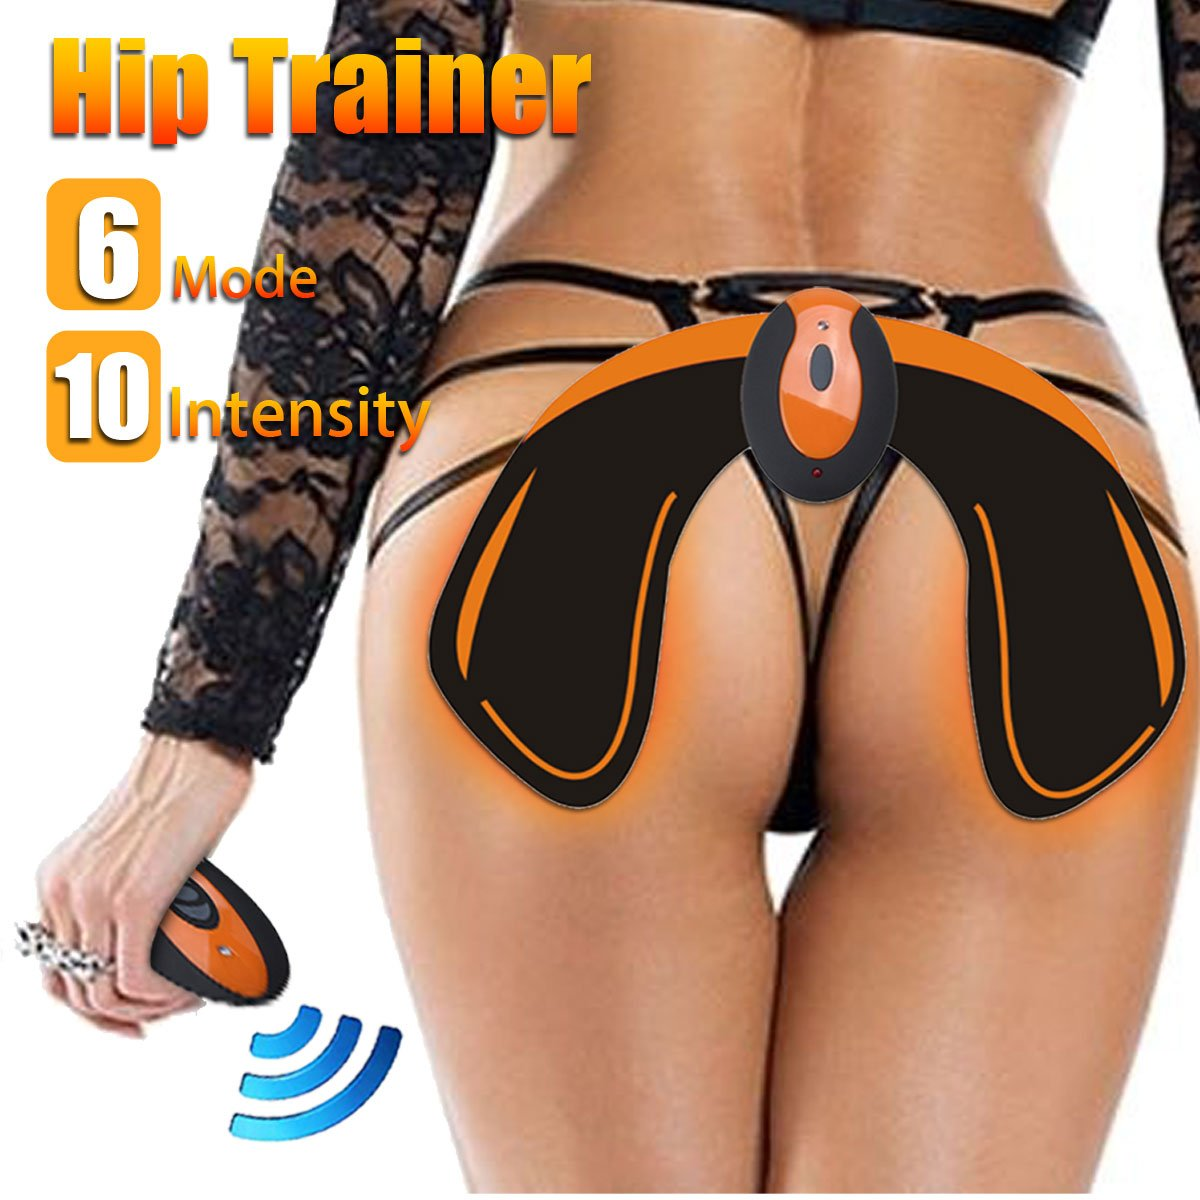 Slimerence Buttocks Trainer, Hips Trainer Massage with Remote EMS and Helps to Lift, Training Booster Muscle Stimulation, Firm and Shape The Buttocks Hip Body Shaper for Women Fitness